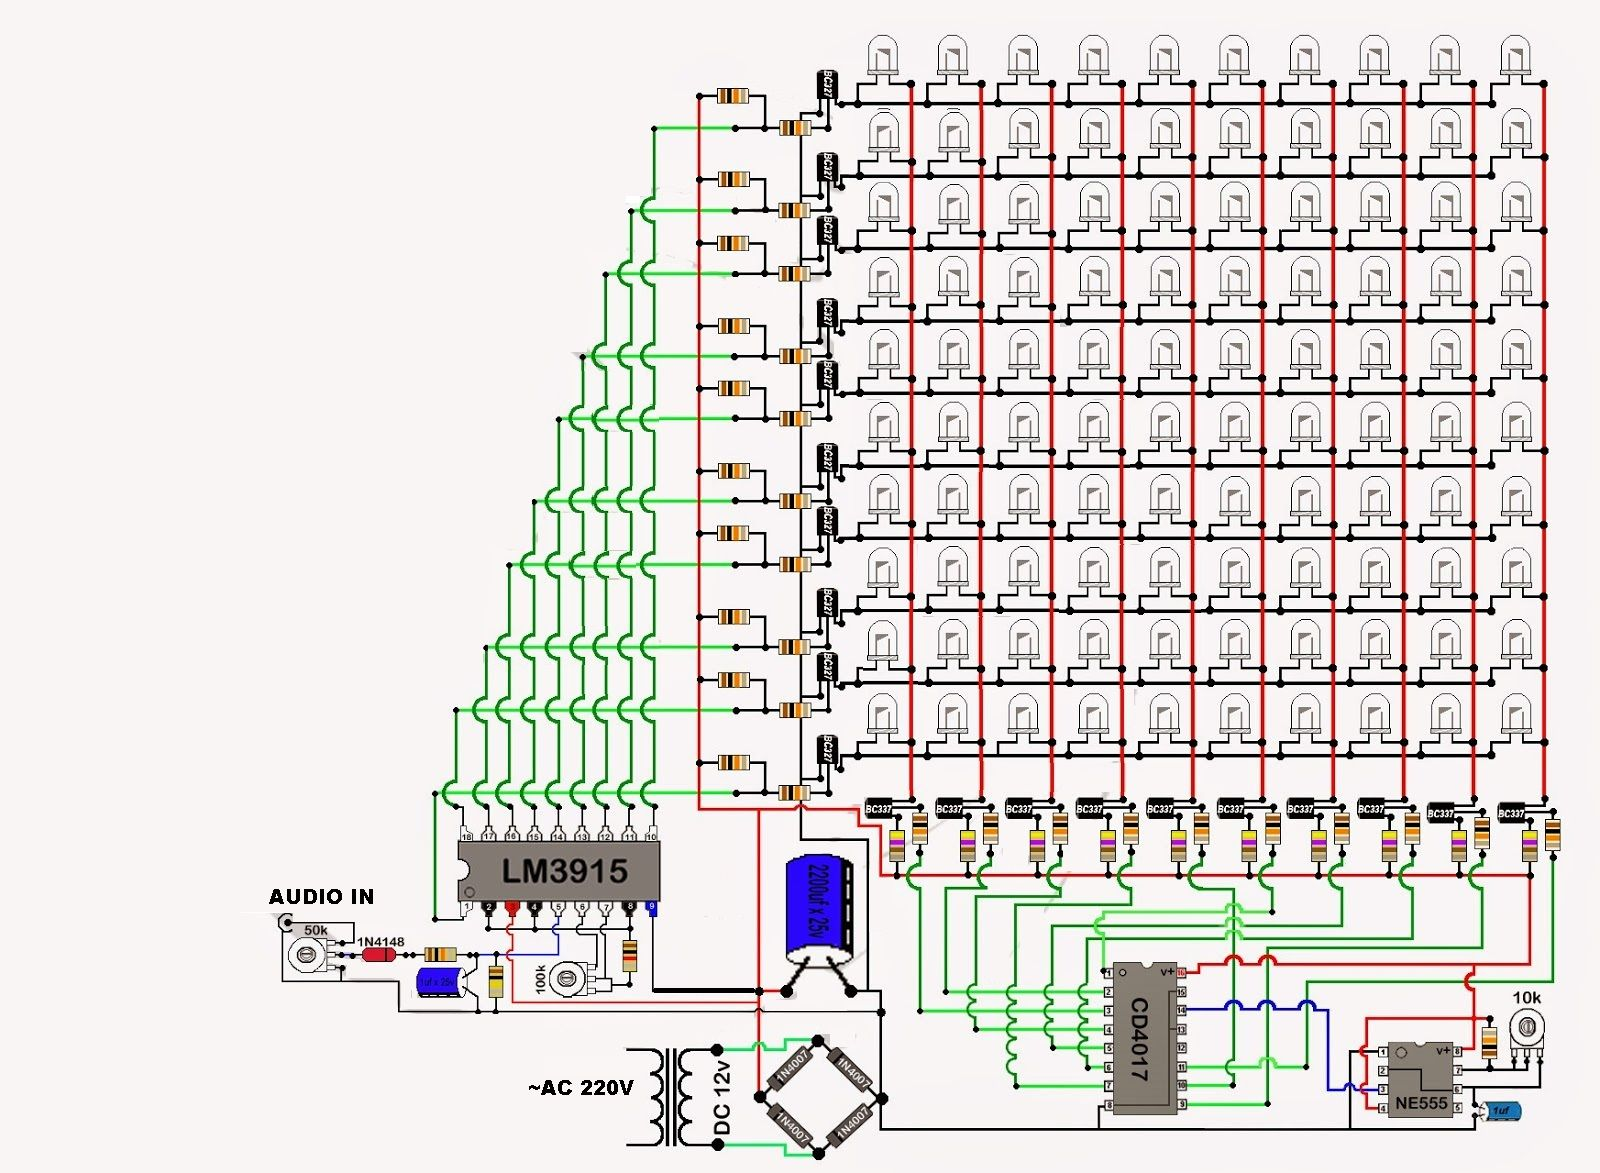 Audio Spectrum Analyzer Circuit Diagram Redarc Sbi12 Wiring 3915 4017 Pinterest Diy Electronics Arduino And Projects Luz Led Electrical Engineering